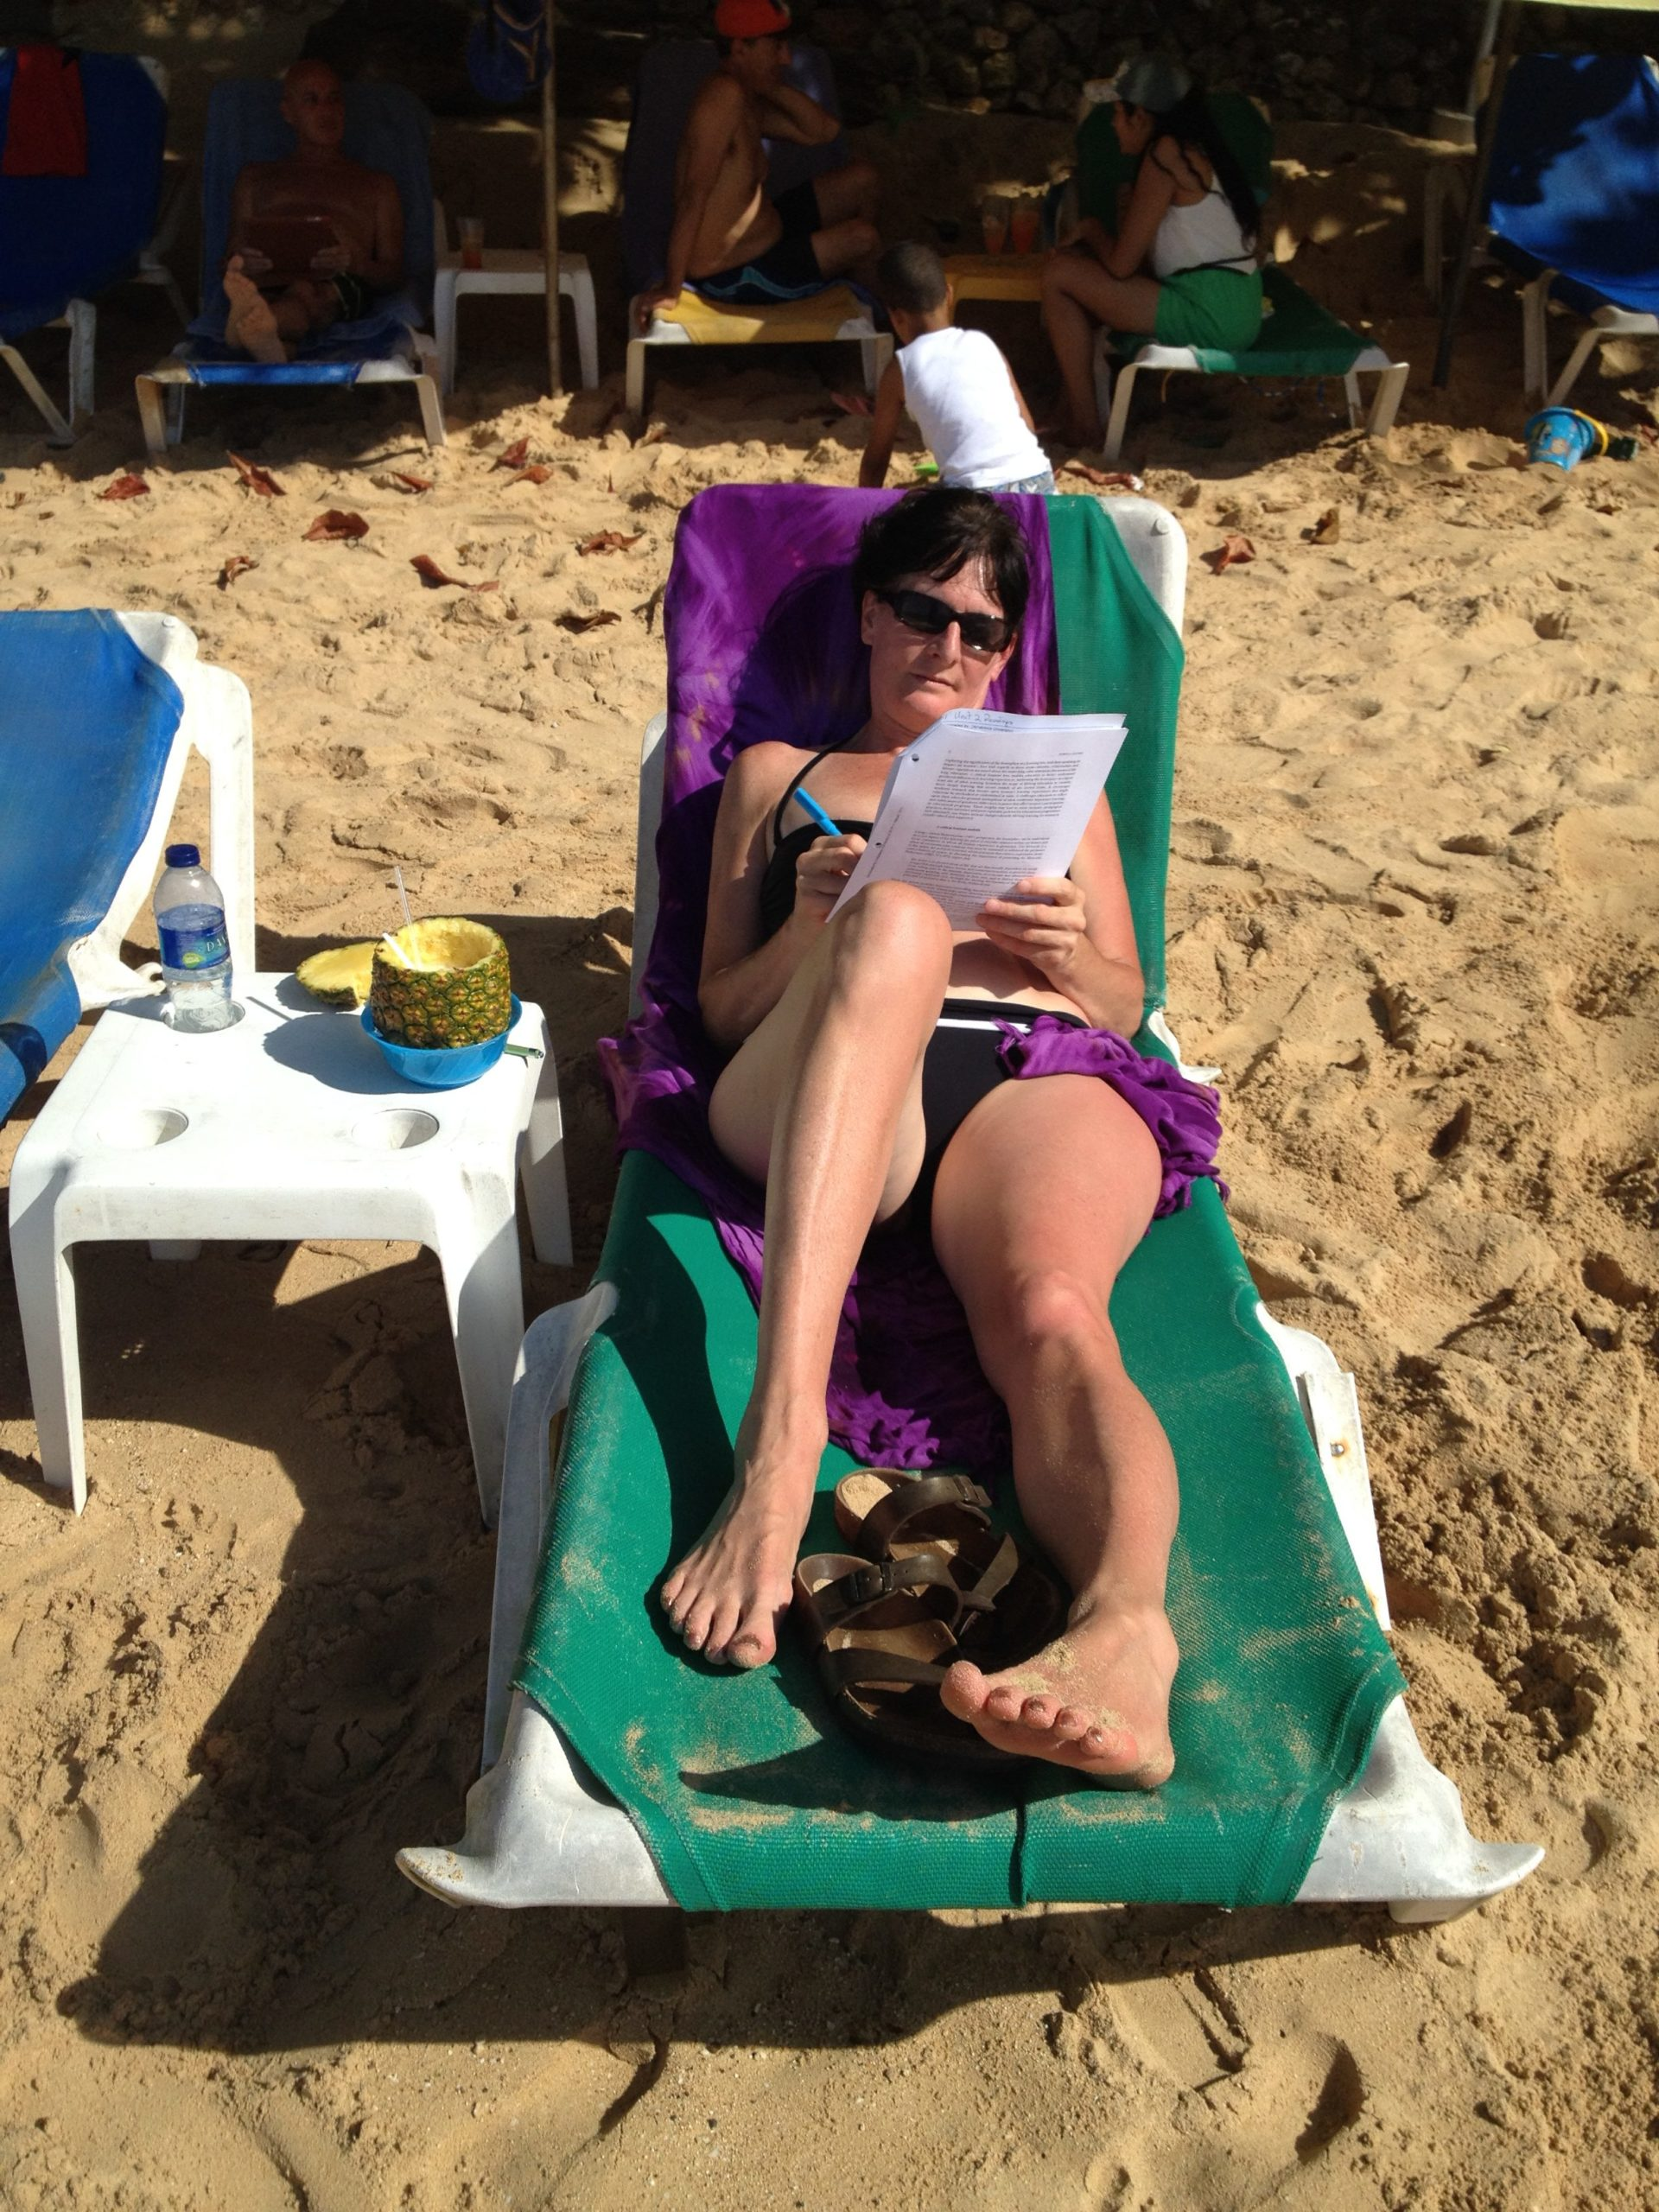 Mary Shier sitting in a lounge chair in her bathing suit on a beach taking notes